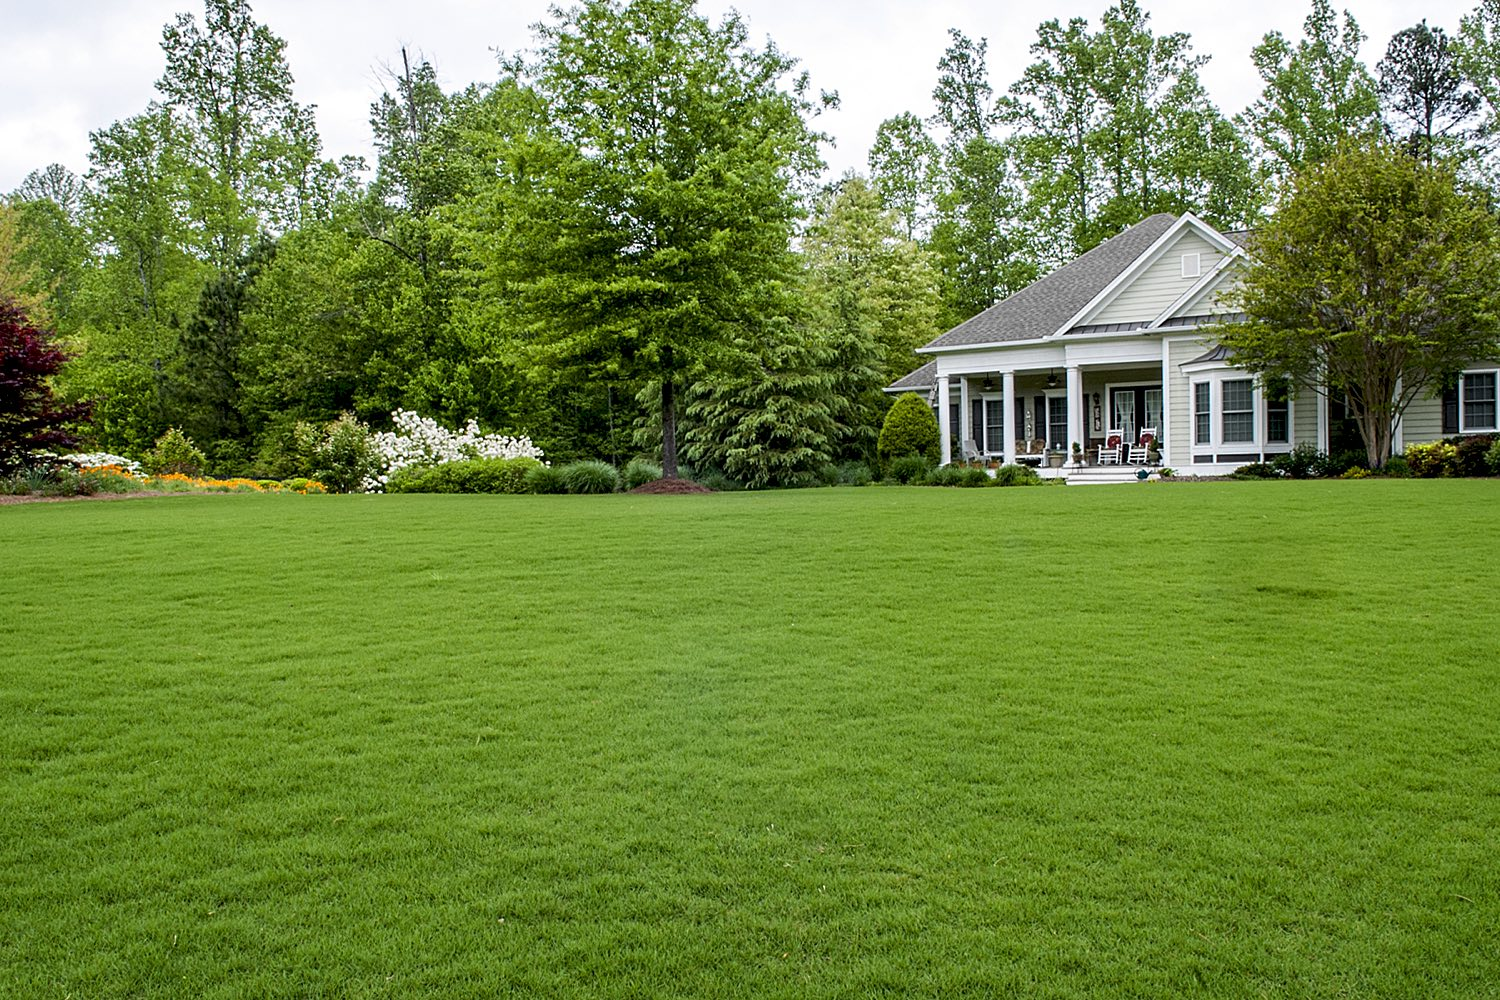 Organic Lawn Care - The HLC Organic Program provides 100% Eco-Friendly Lawn Care That Is Safe For Your Children & Pets. If You Want A Affordable Professional-Looking Lawn That Is Safe For Your Loved-Ones, Then HLC Organic Is For You!